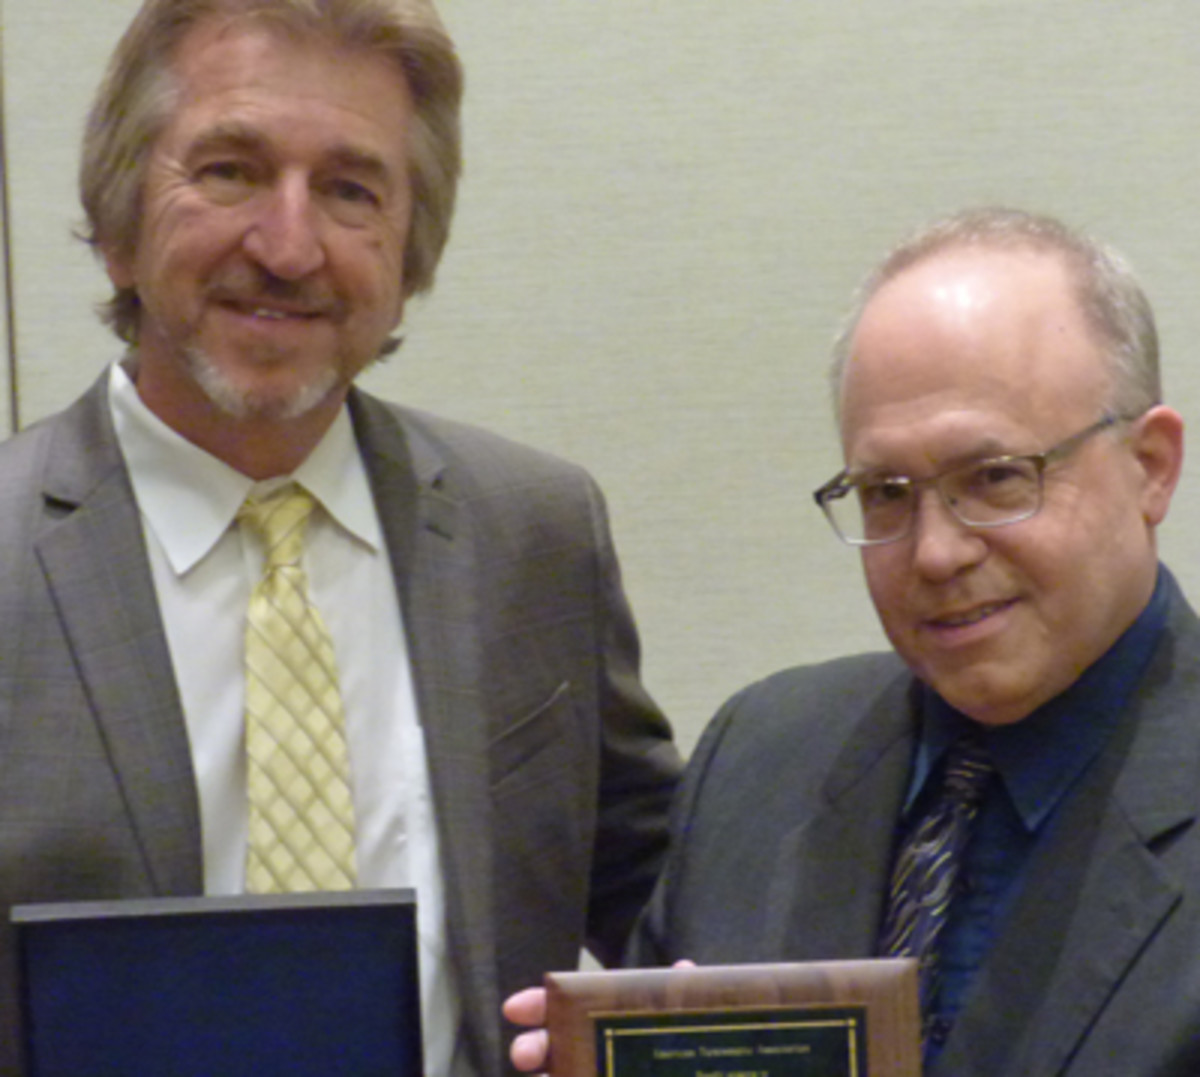 David W. Lange, right, accepts the Numismatist of the Year Award from Jeff Garrett.